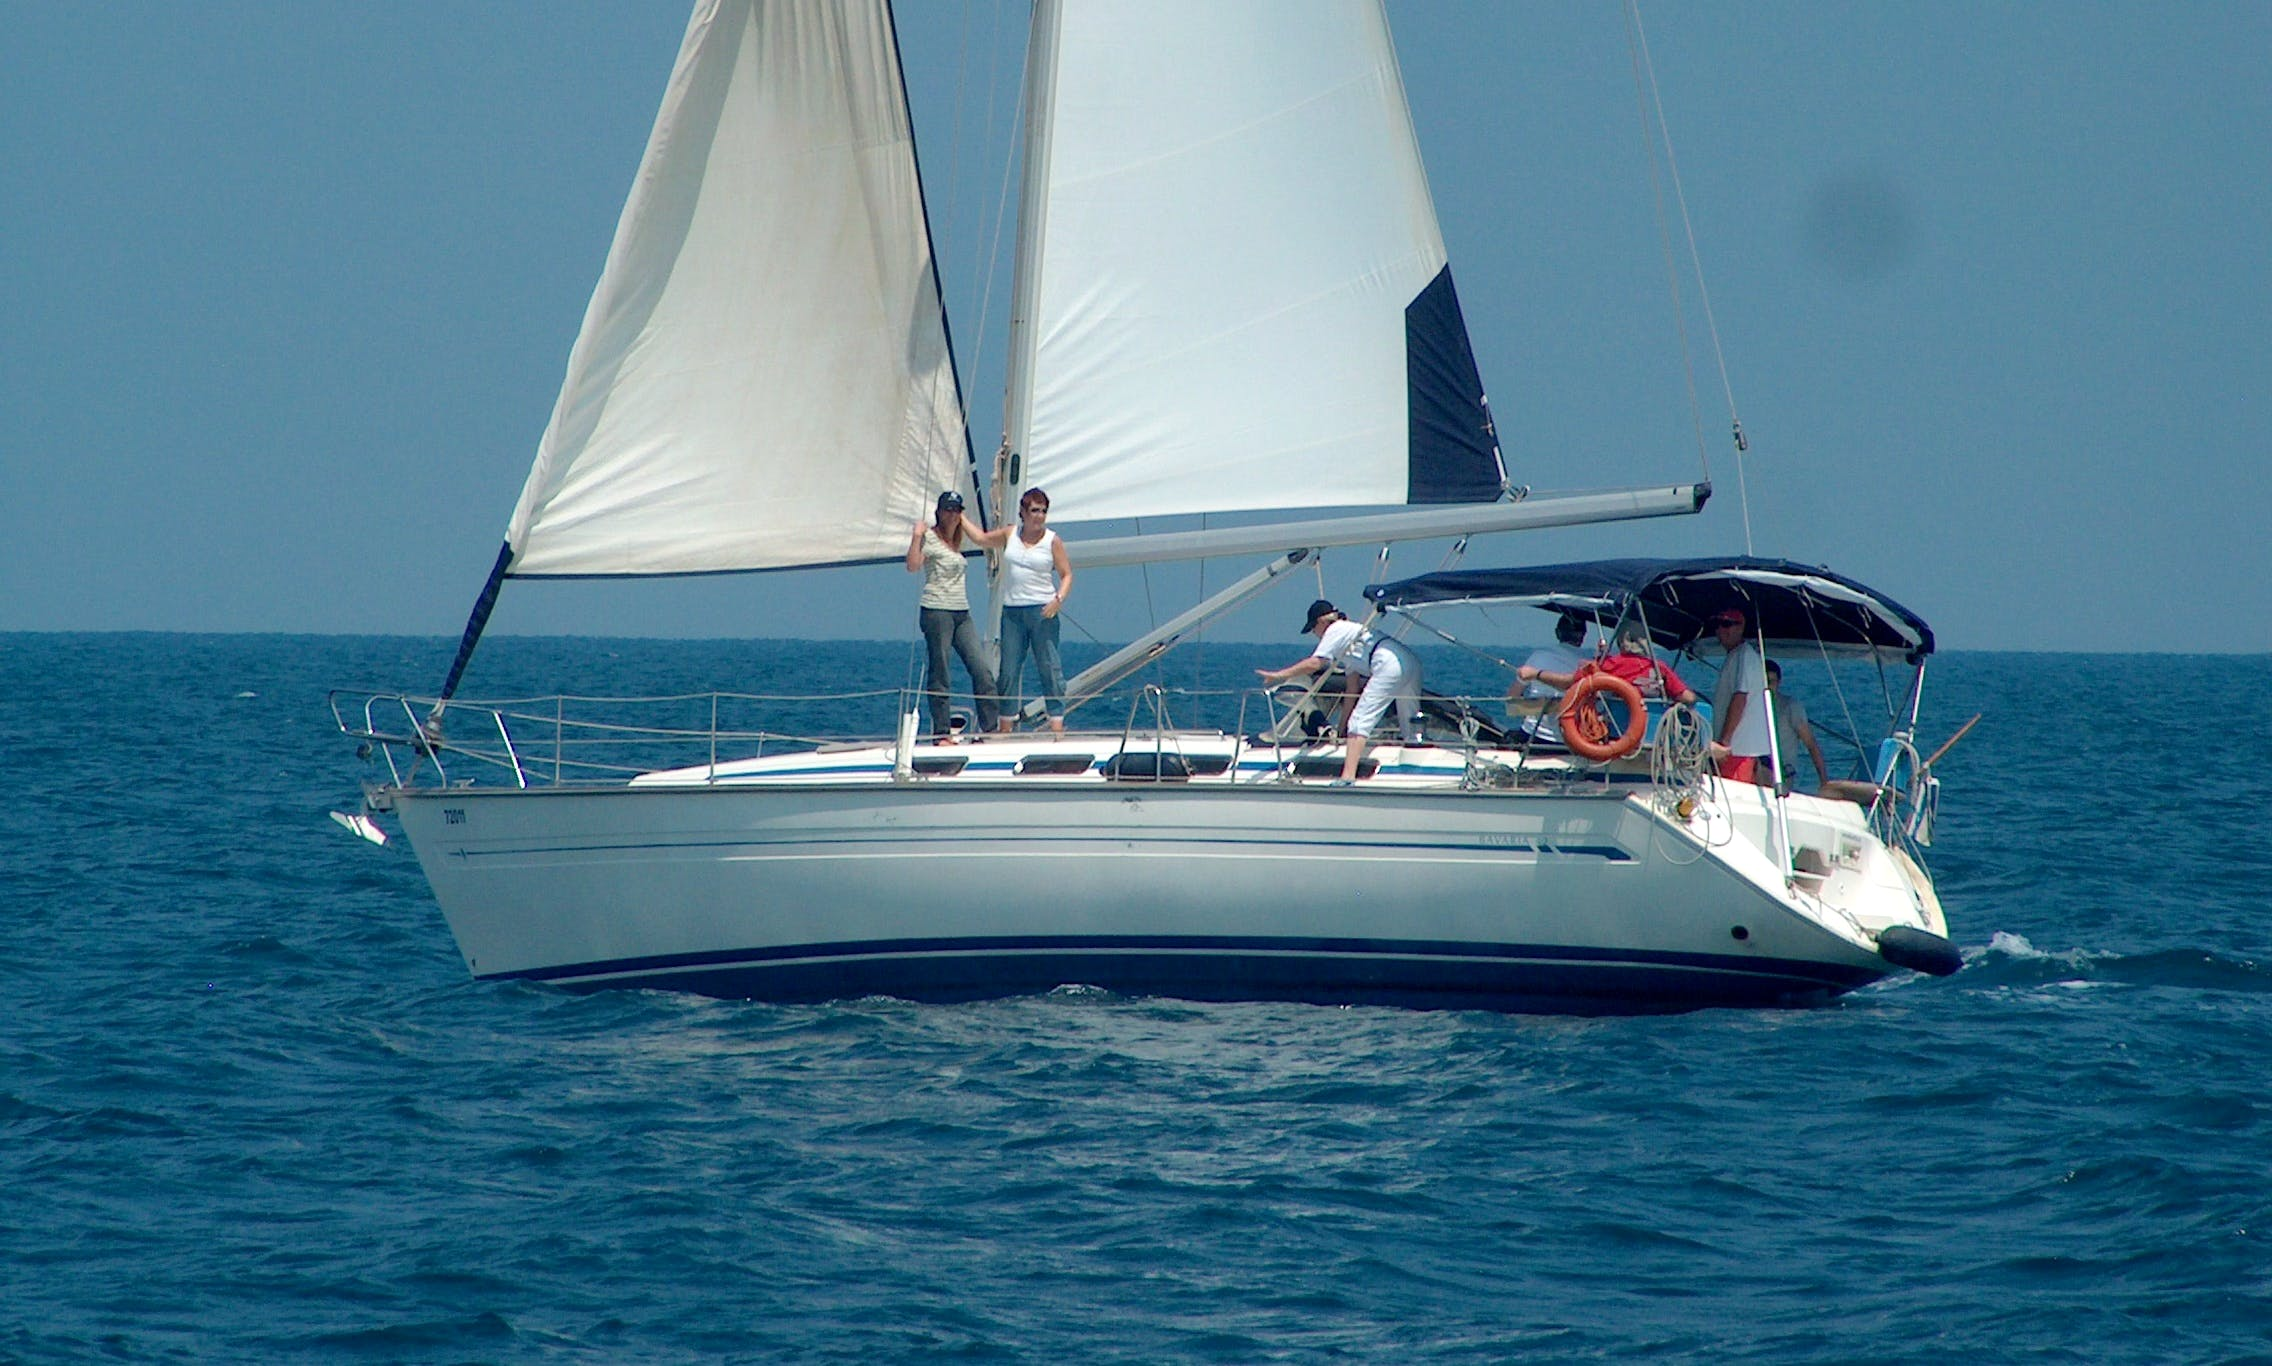 Cruising and Sailing the Haifa Bay on 42' Bavaria Sailboat